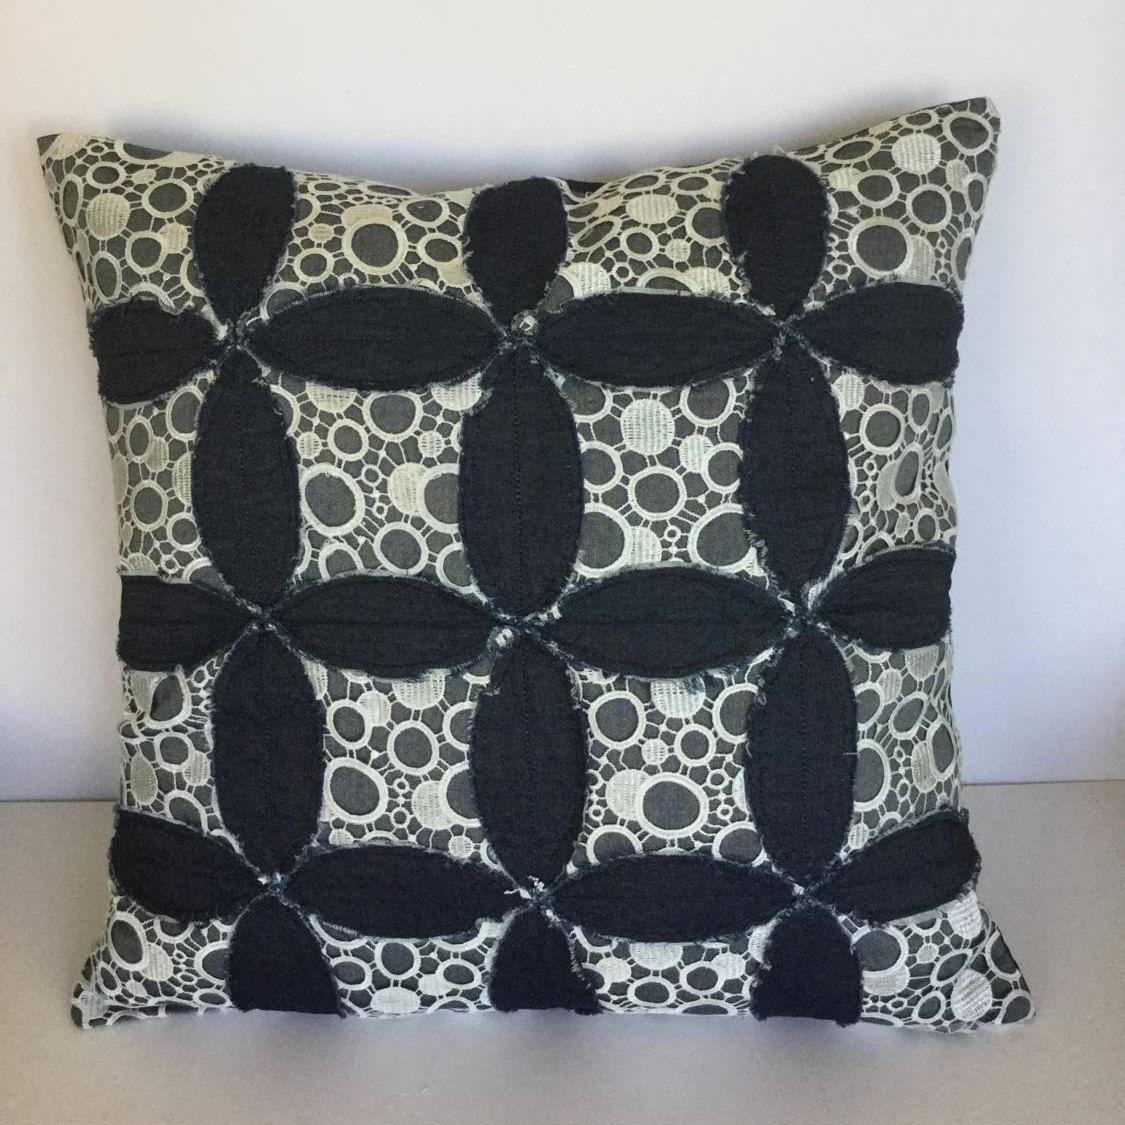 Hand appliqued patchwork decorative pillow by florafountain on etsy